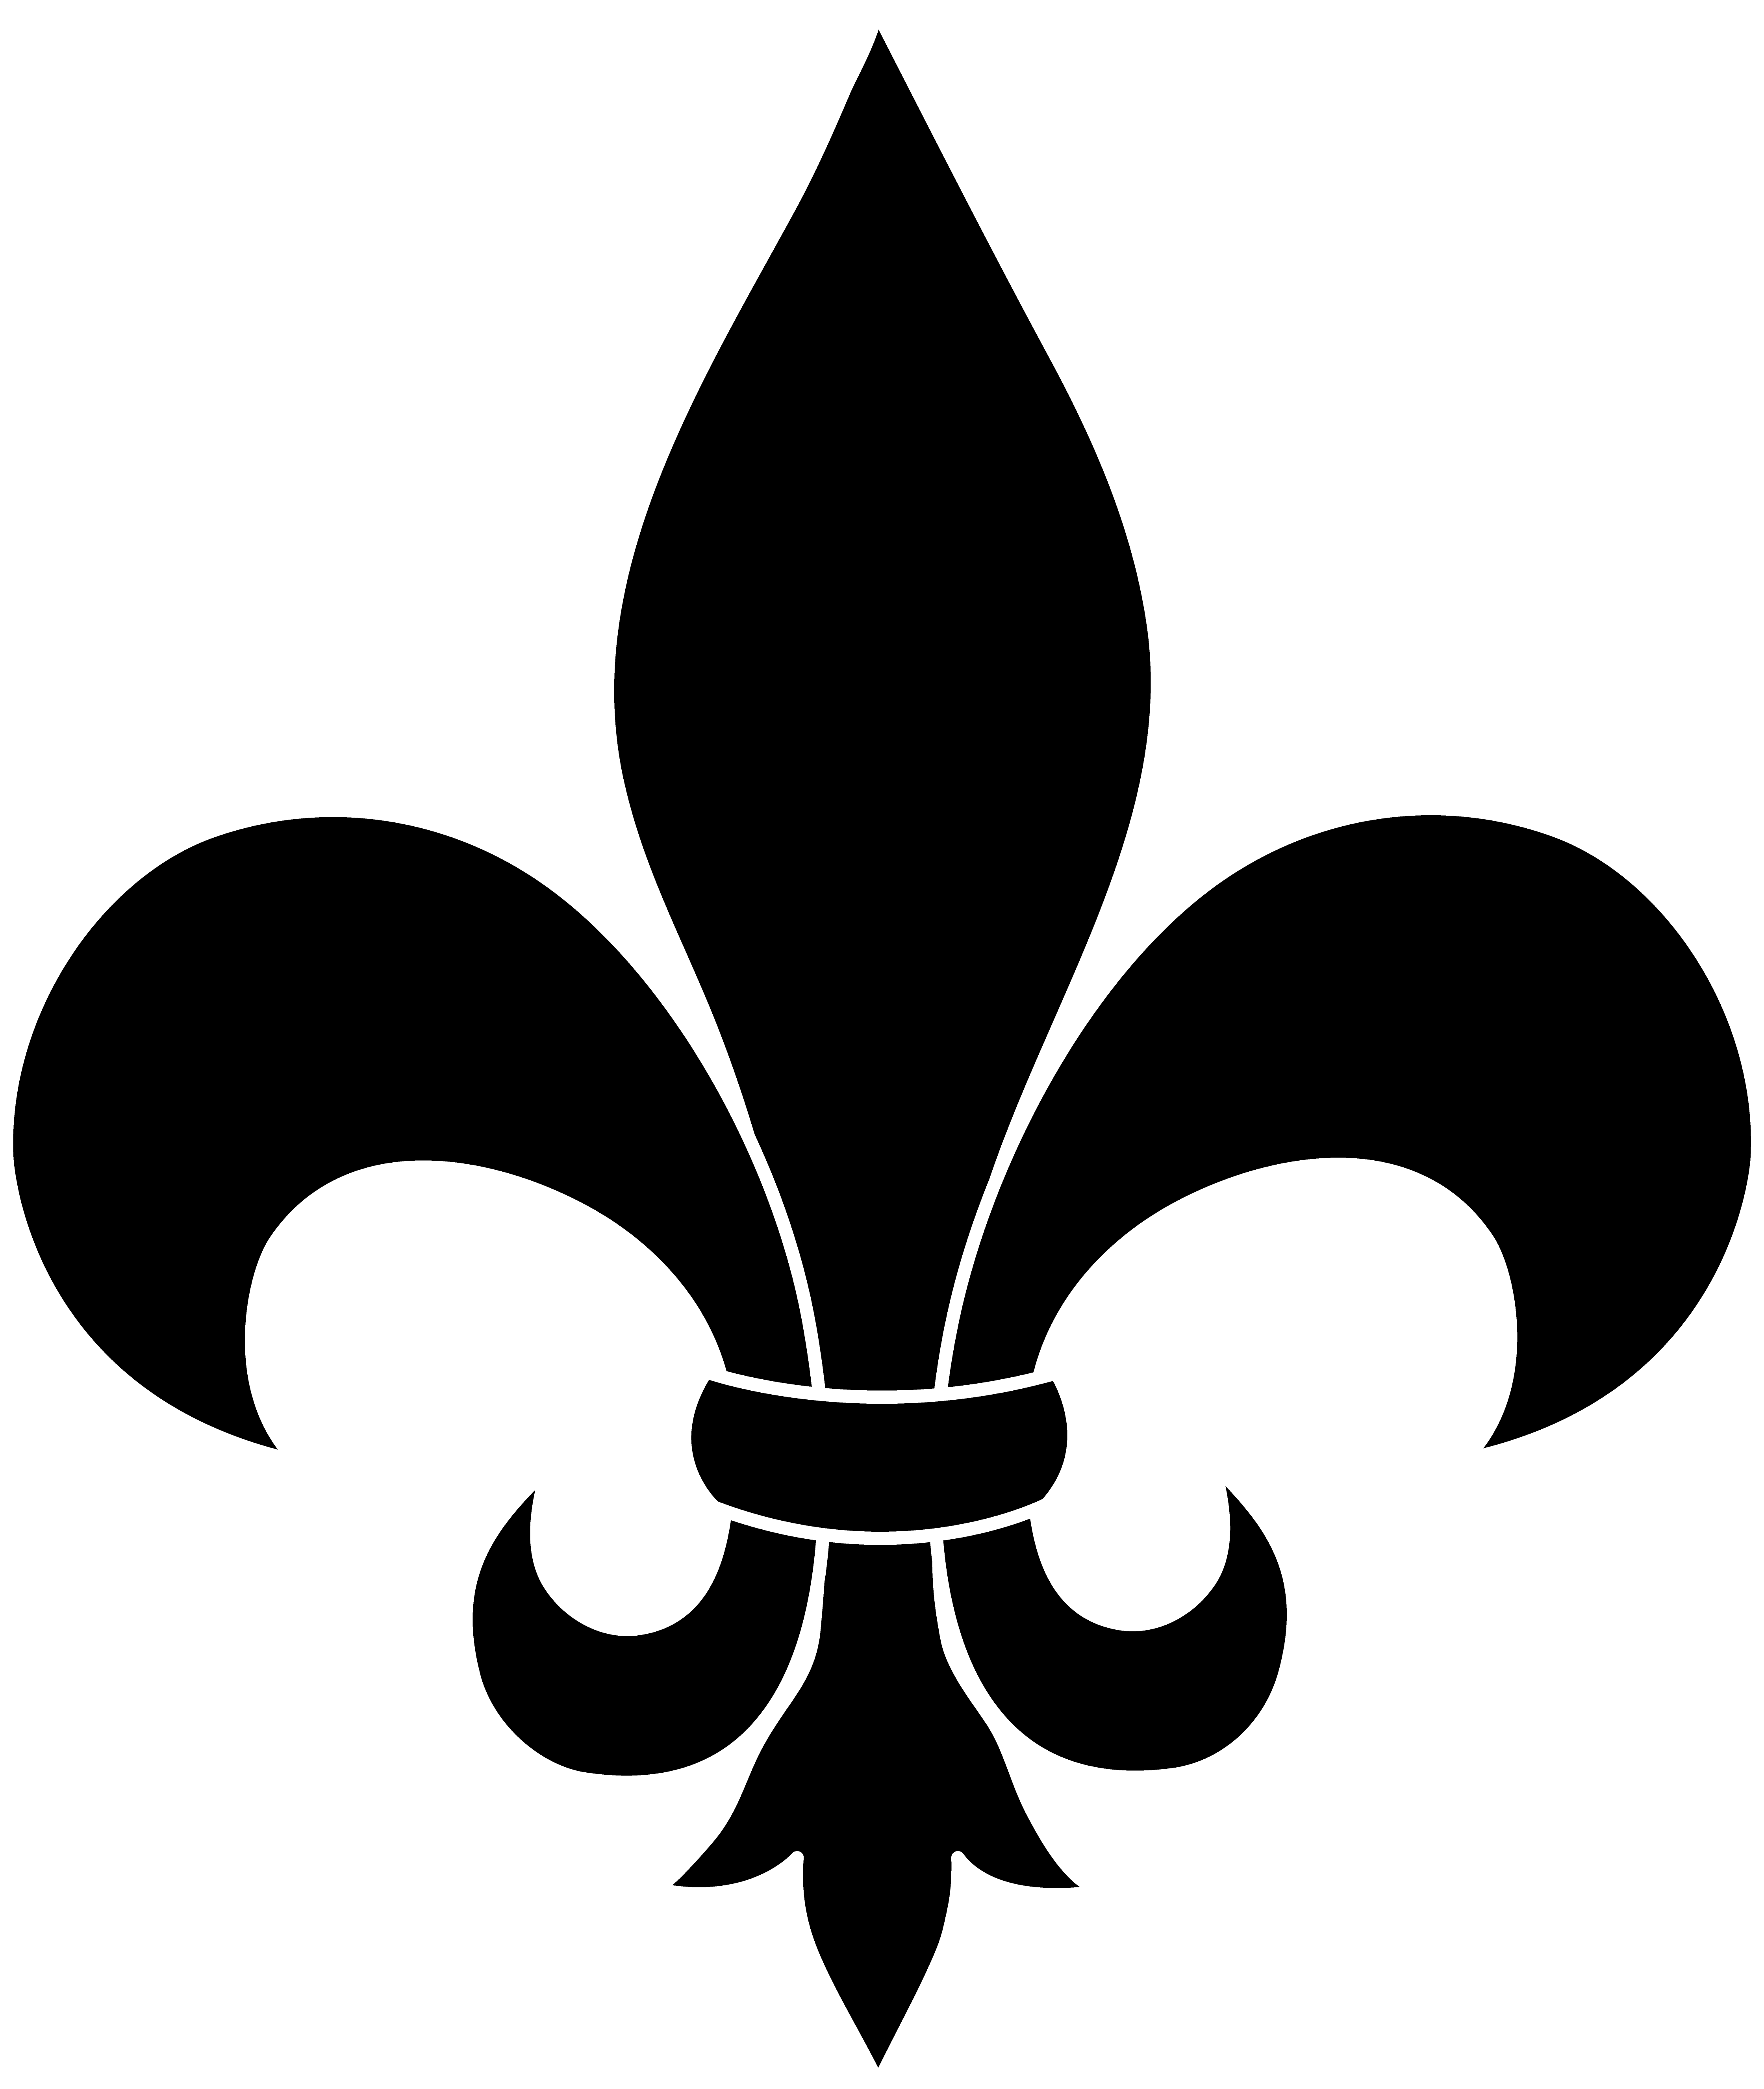 frrench free clip art black fleur de lis silhouette for flyer [ 4480 x 5304 Pixel ]